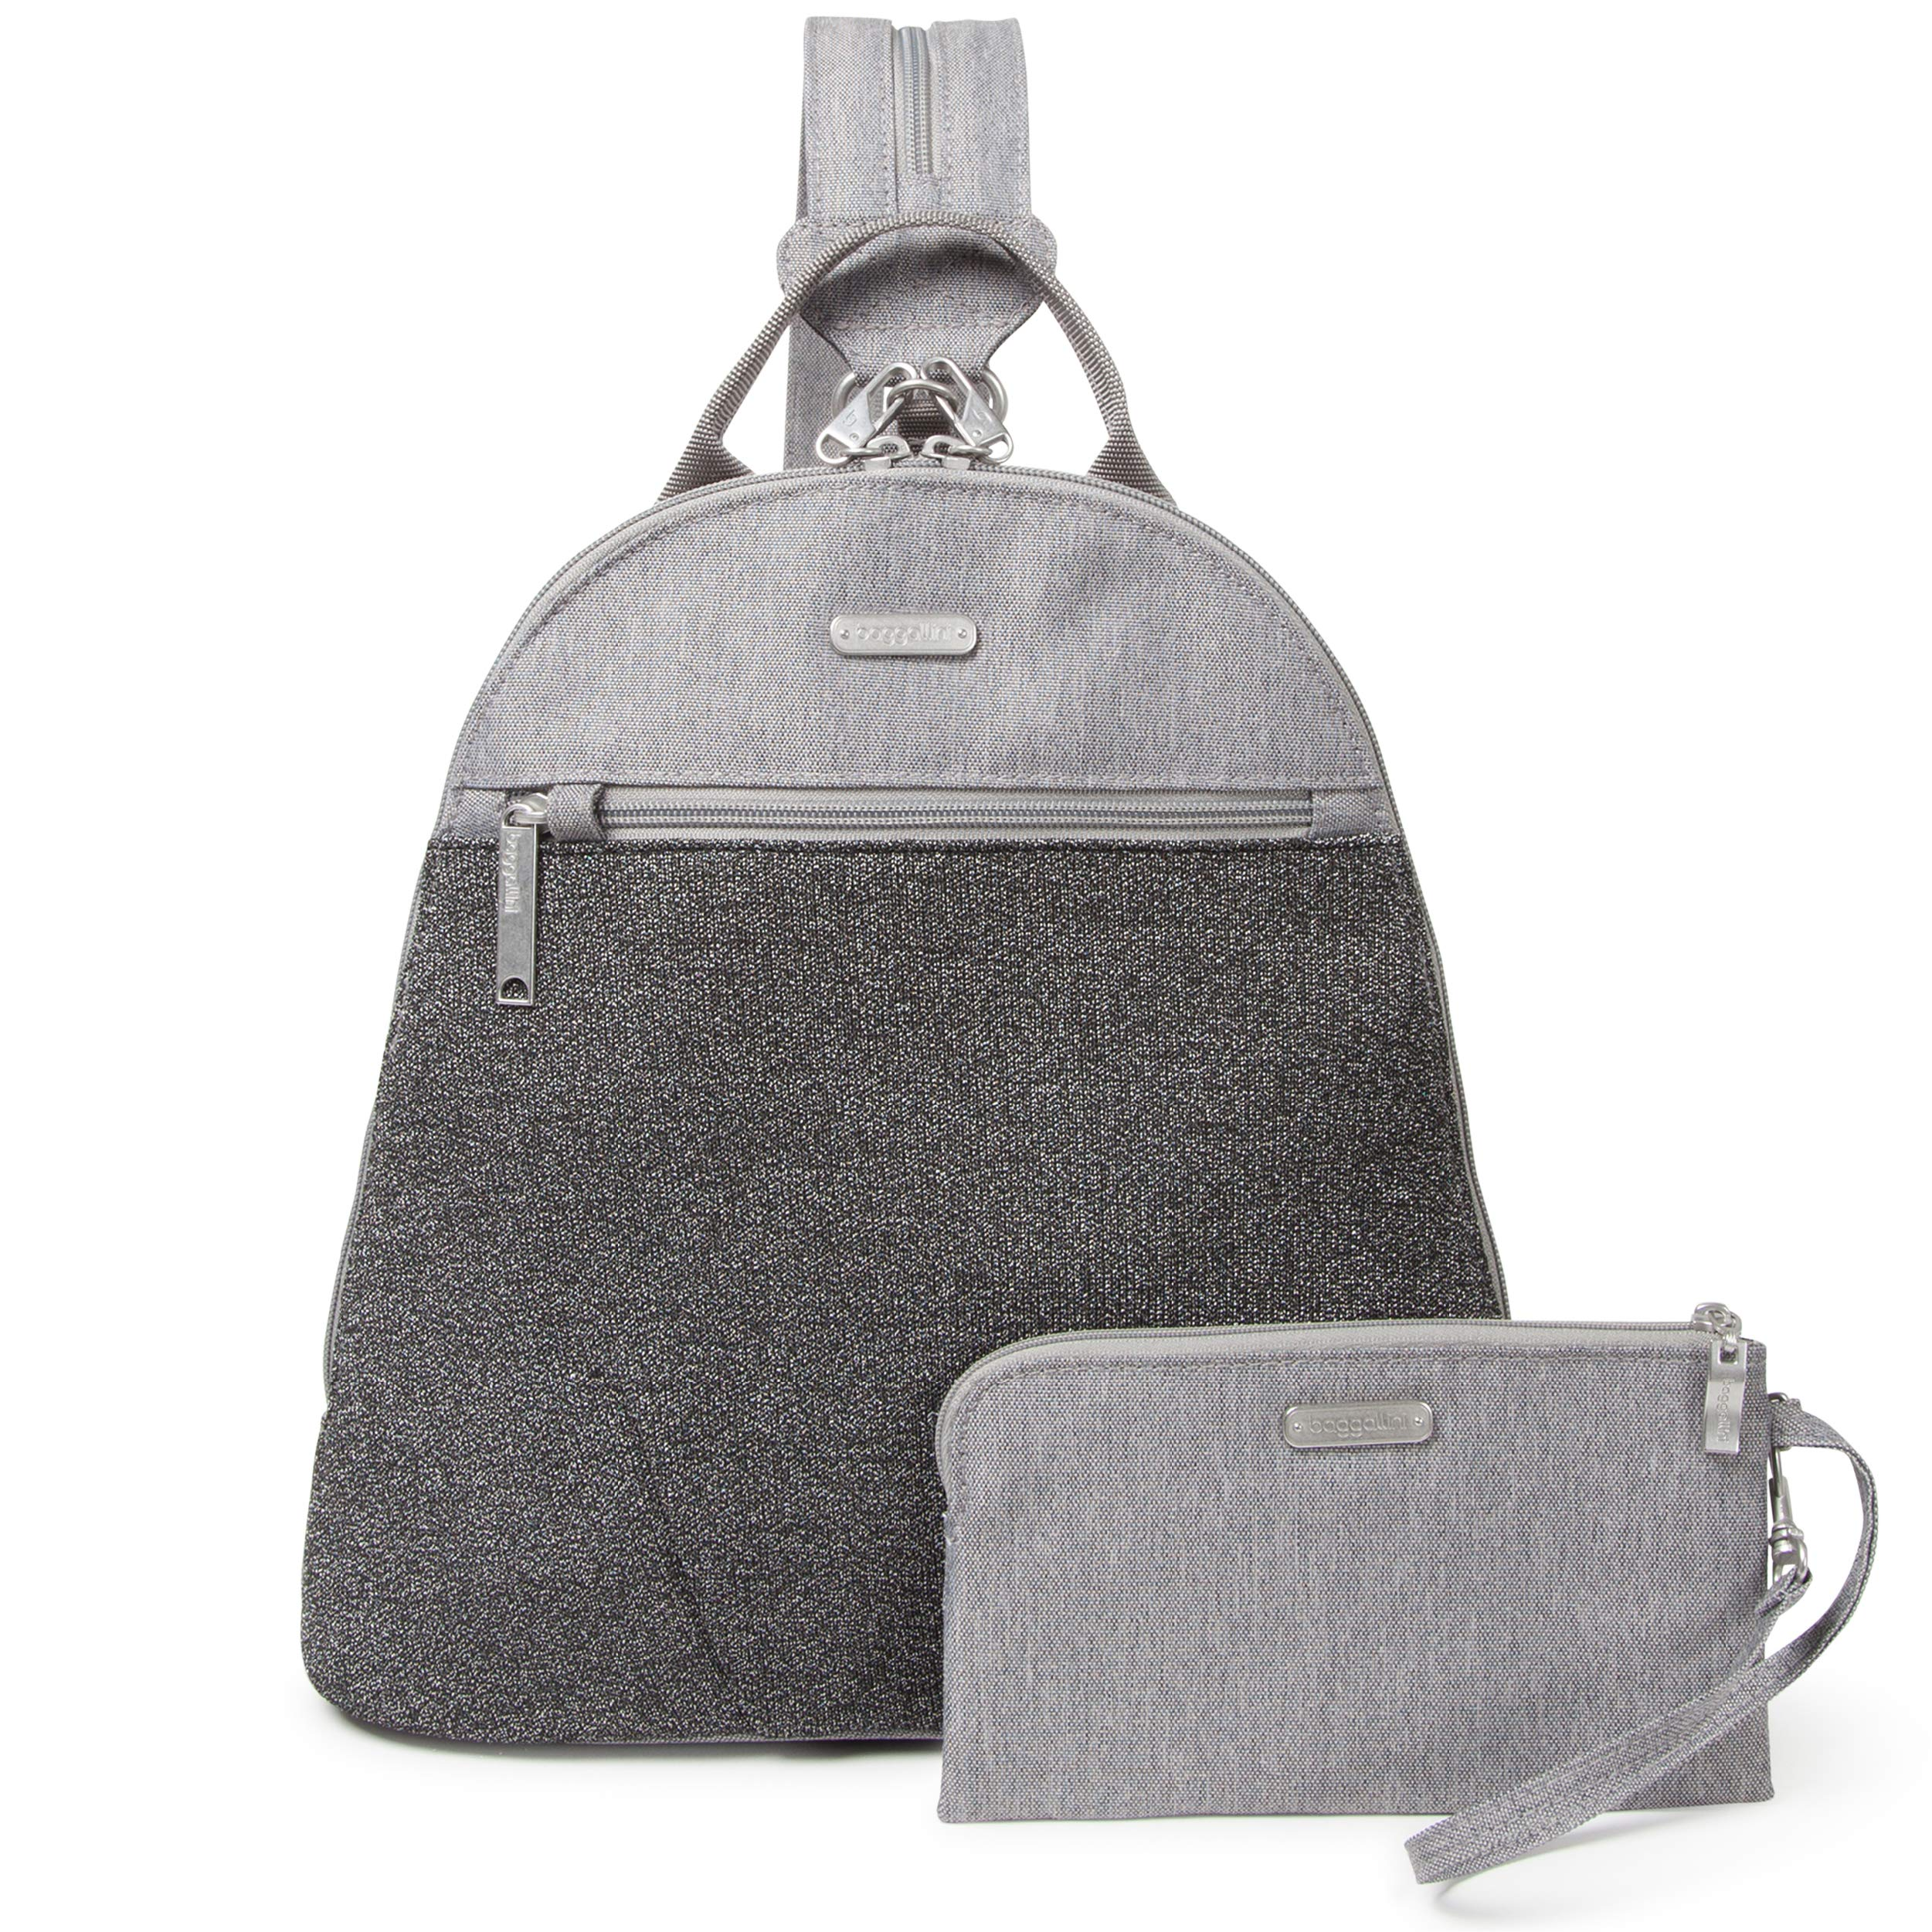 Baggallini Anti-Theft Backpack - Stylish Carry-on Travel Bag With Locking Zippers and RFID-Protected Wristlet, Gray Design